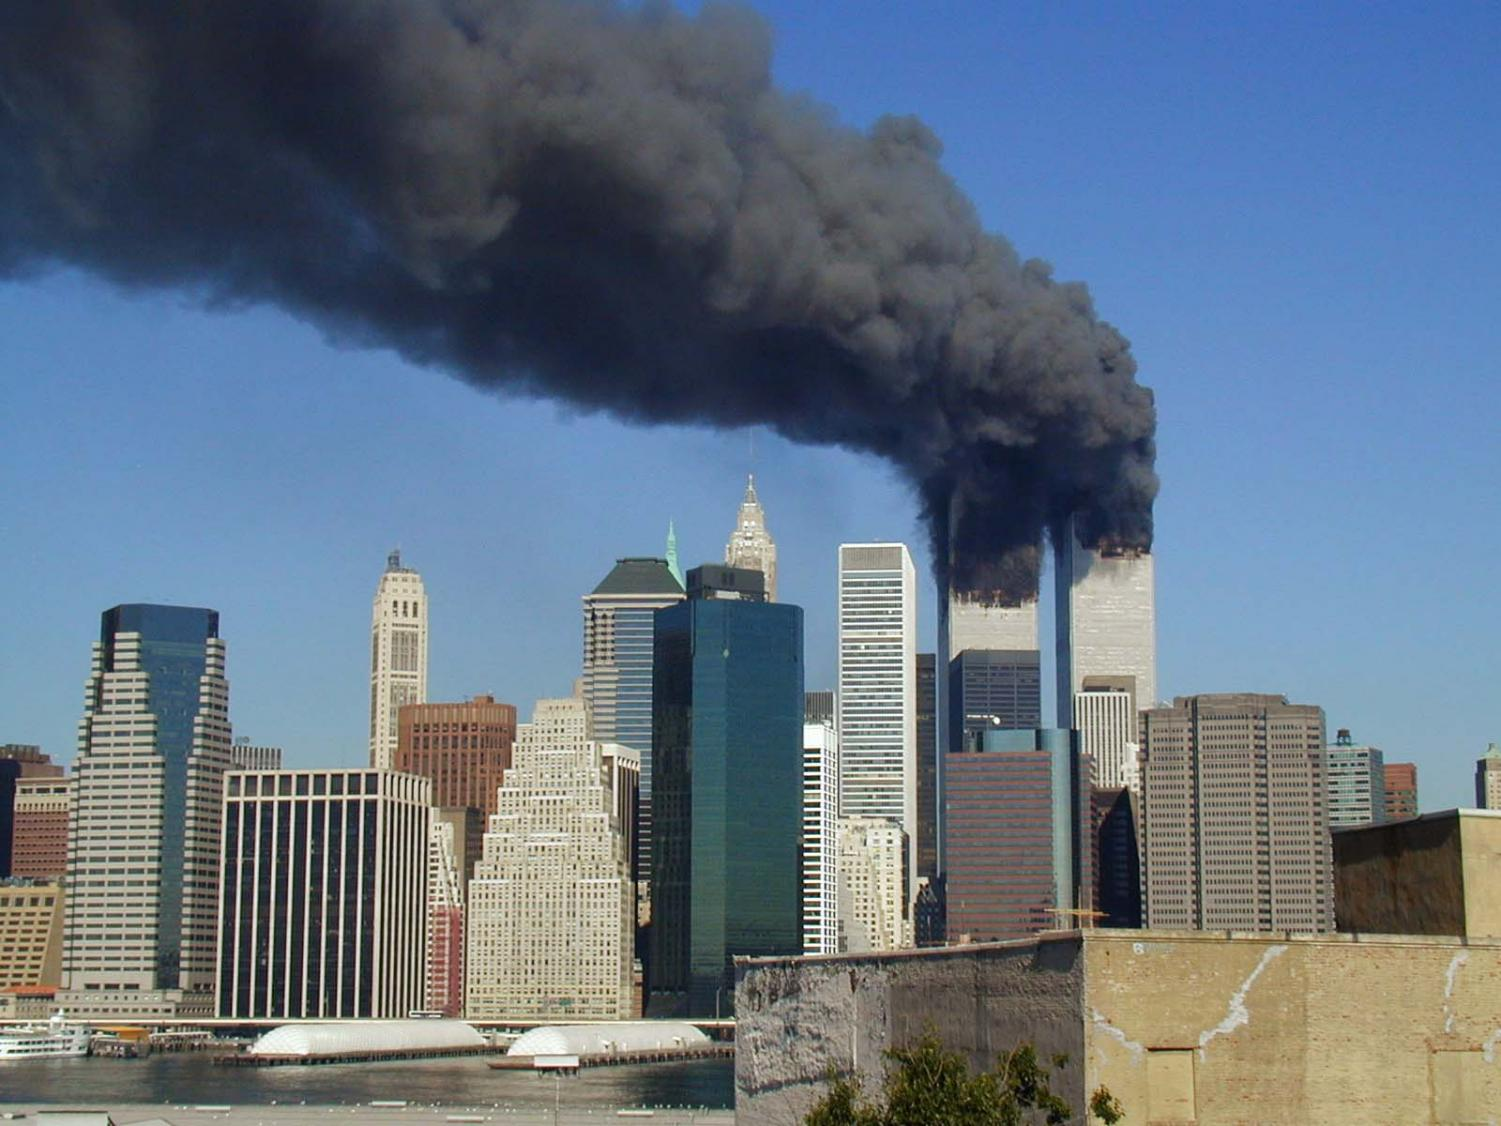 The World Trade Towers smoking in the aftermath of the attacks.